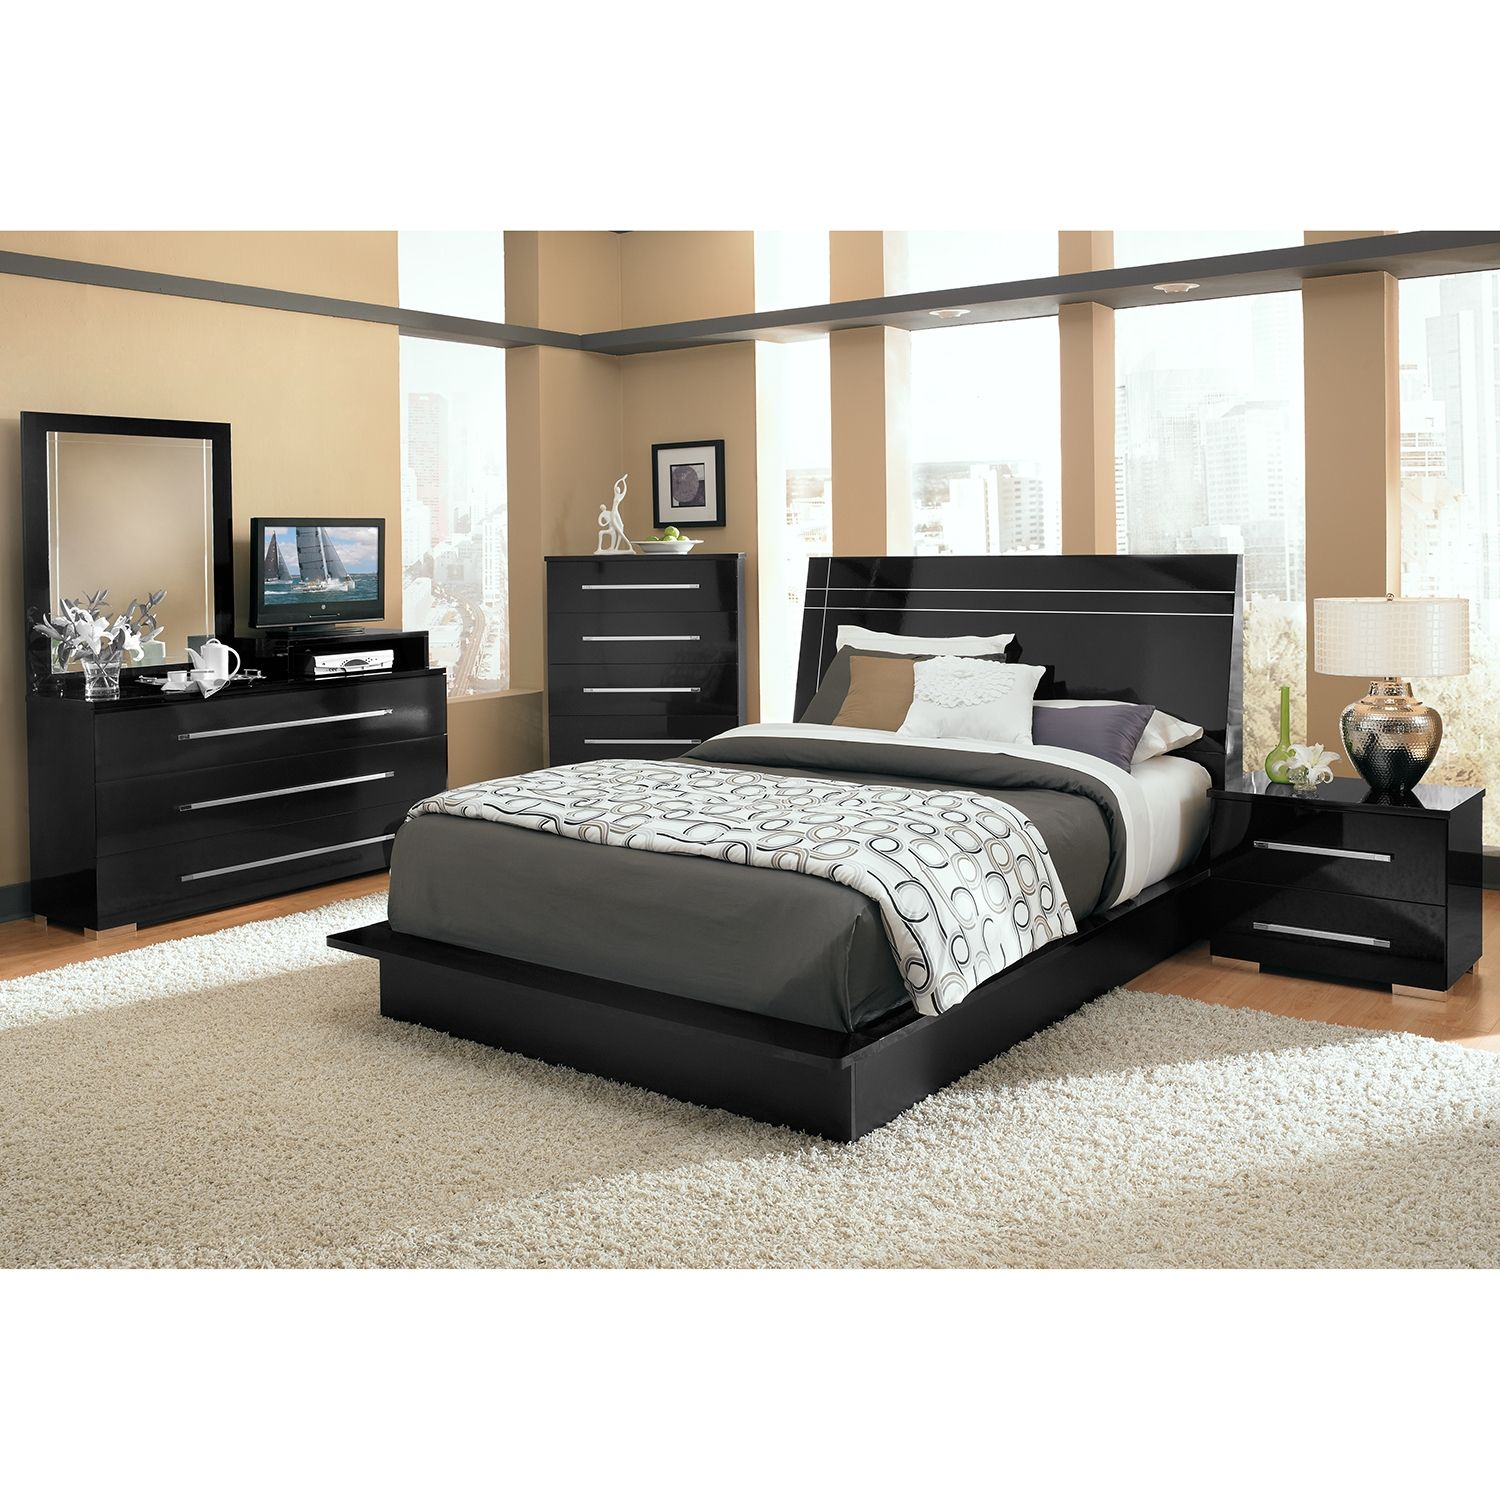 Dimora Bedroom Set Black